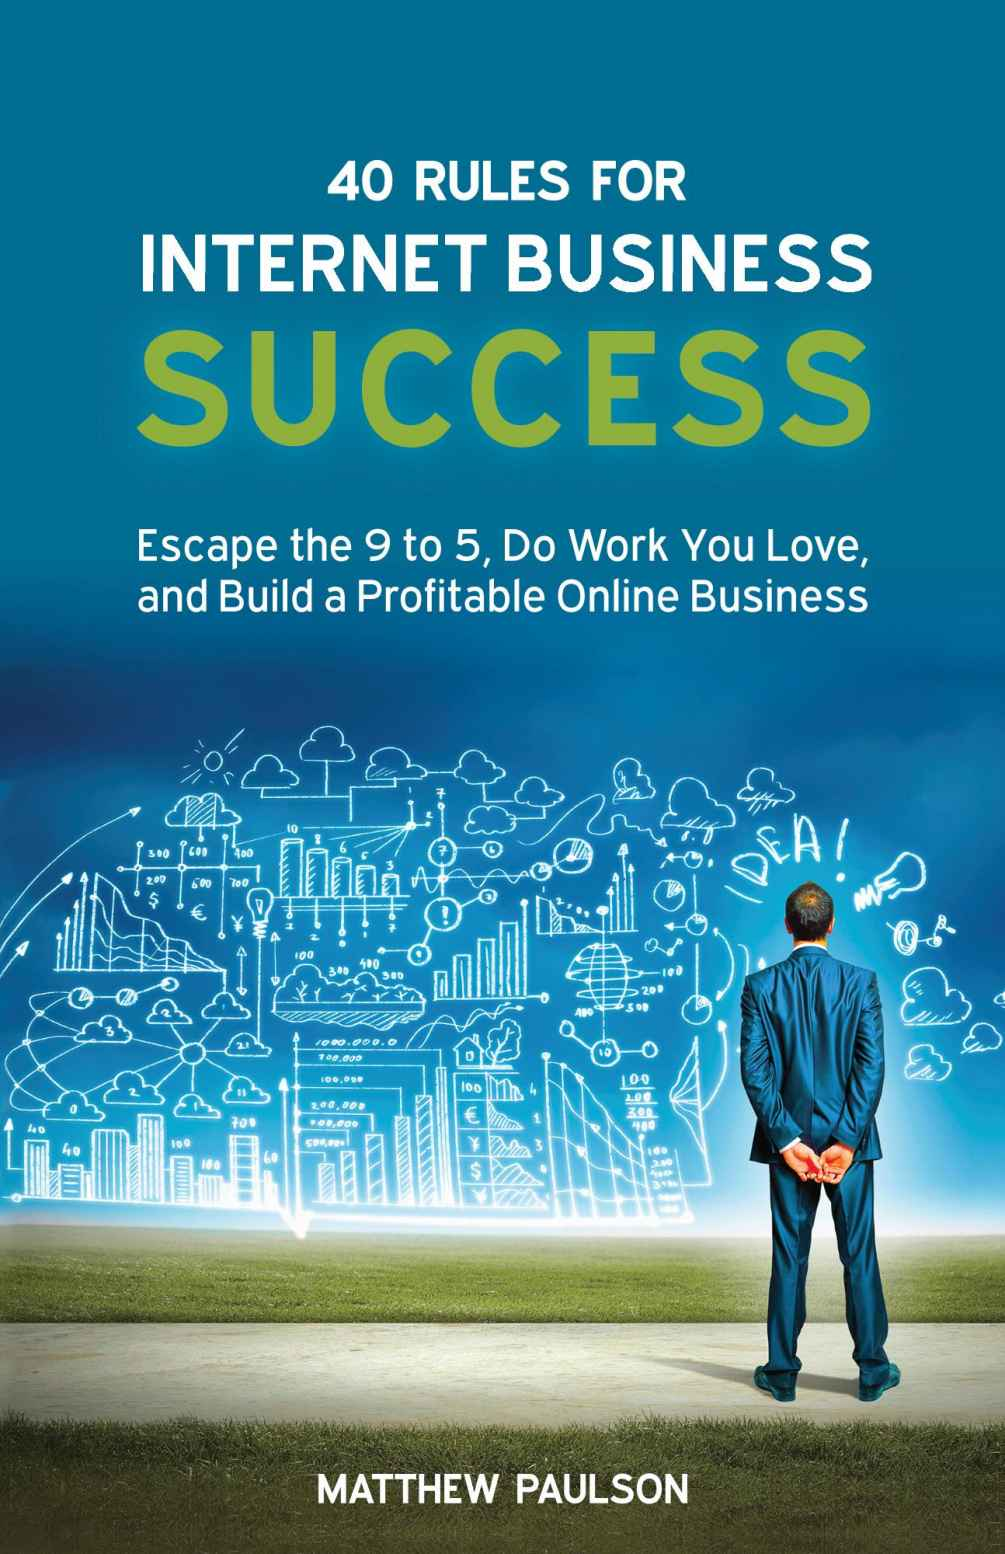 40 Rules for Internet Business Success: Escape the 9 to 5, Do Work You Love, and Build a Profitable Online Business by Matthew Paulson